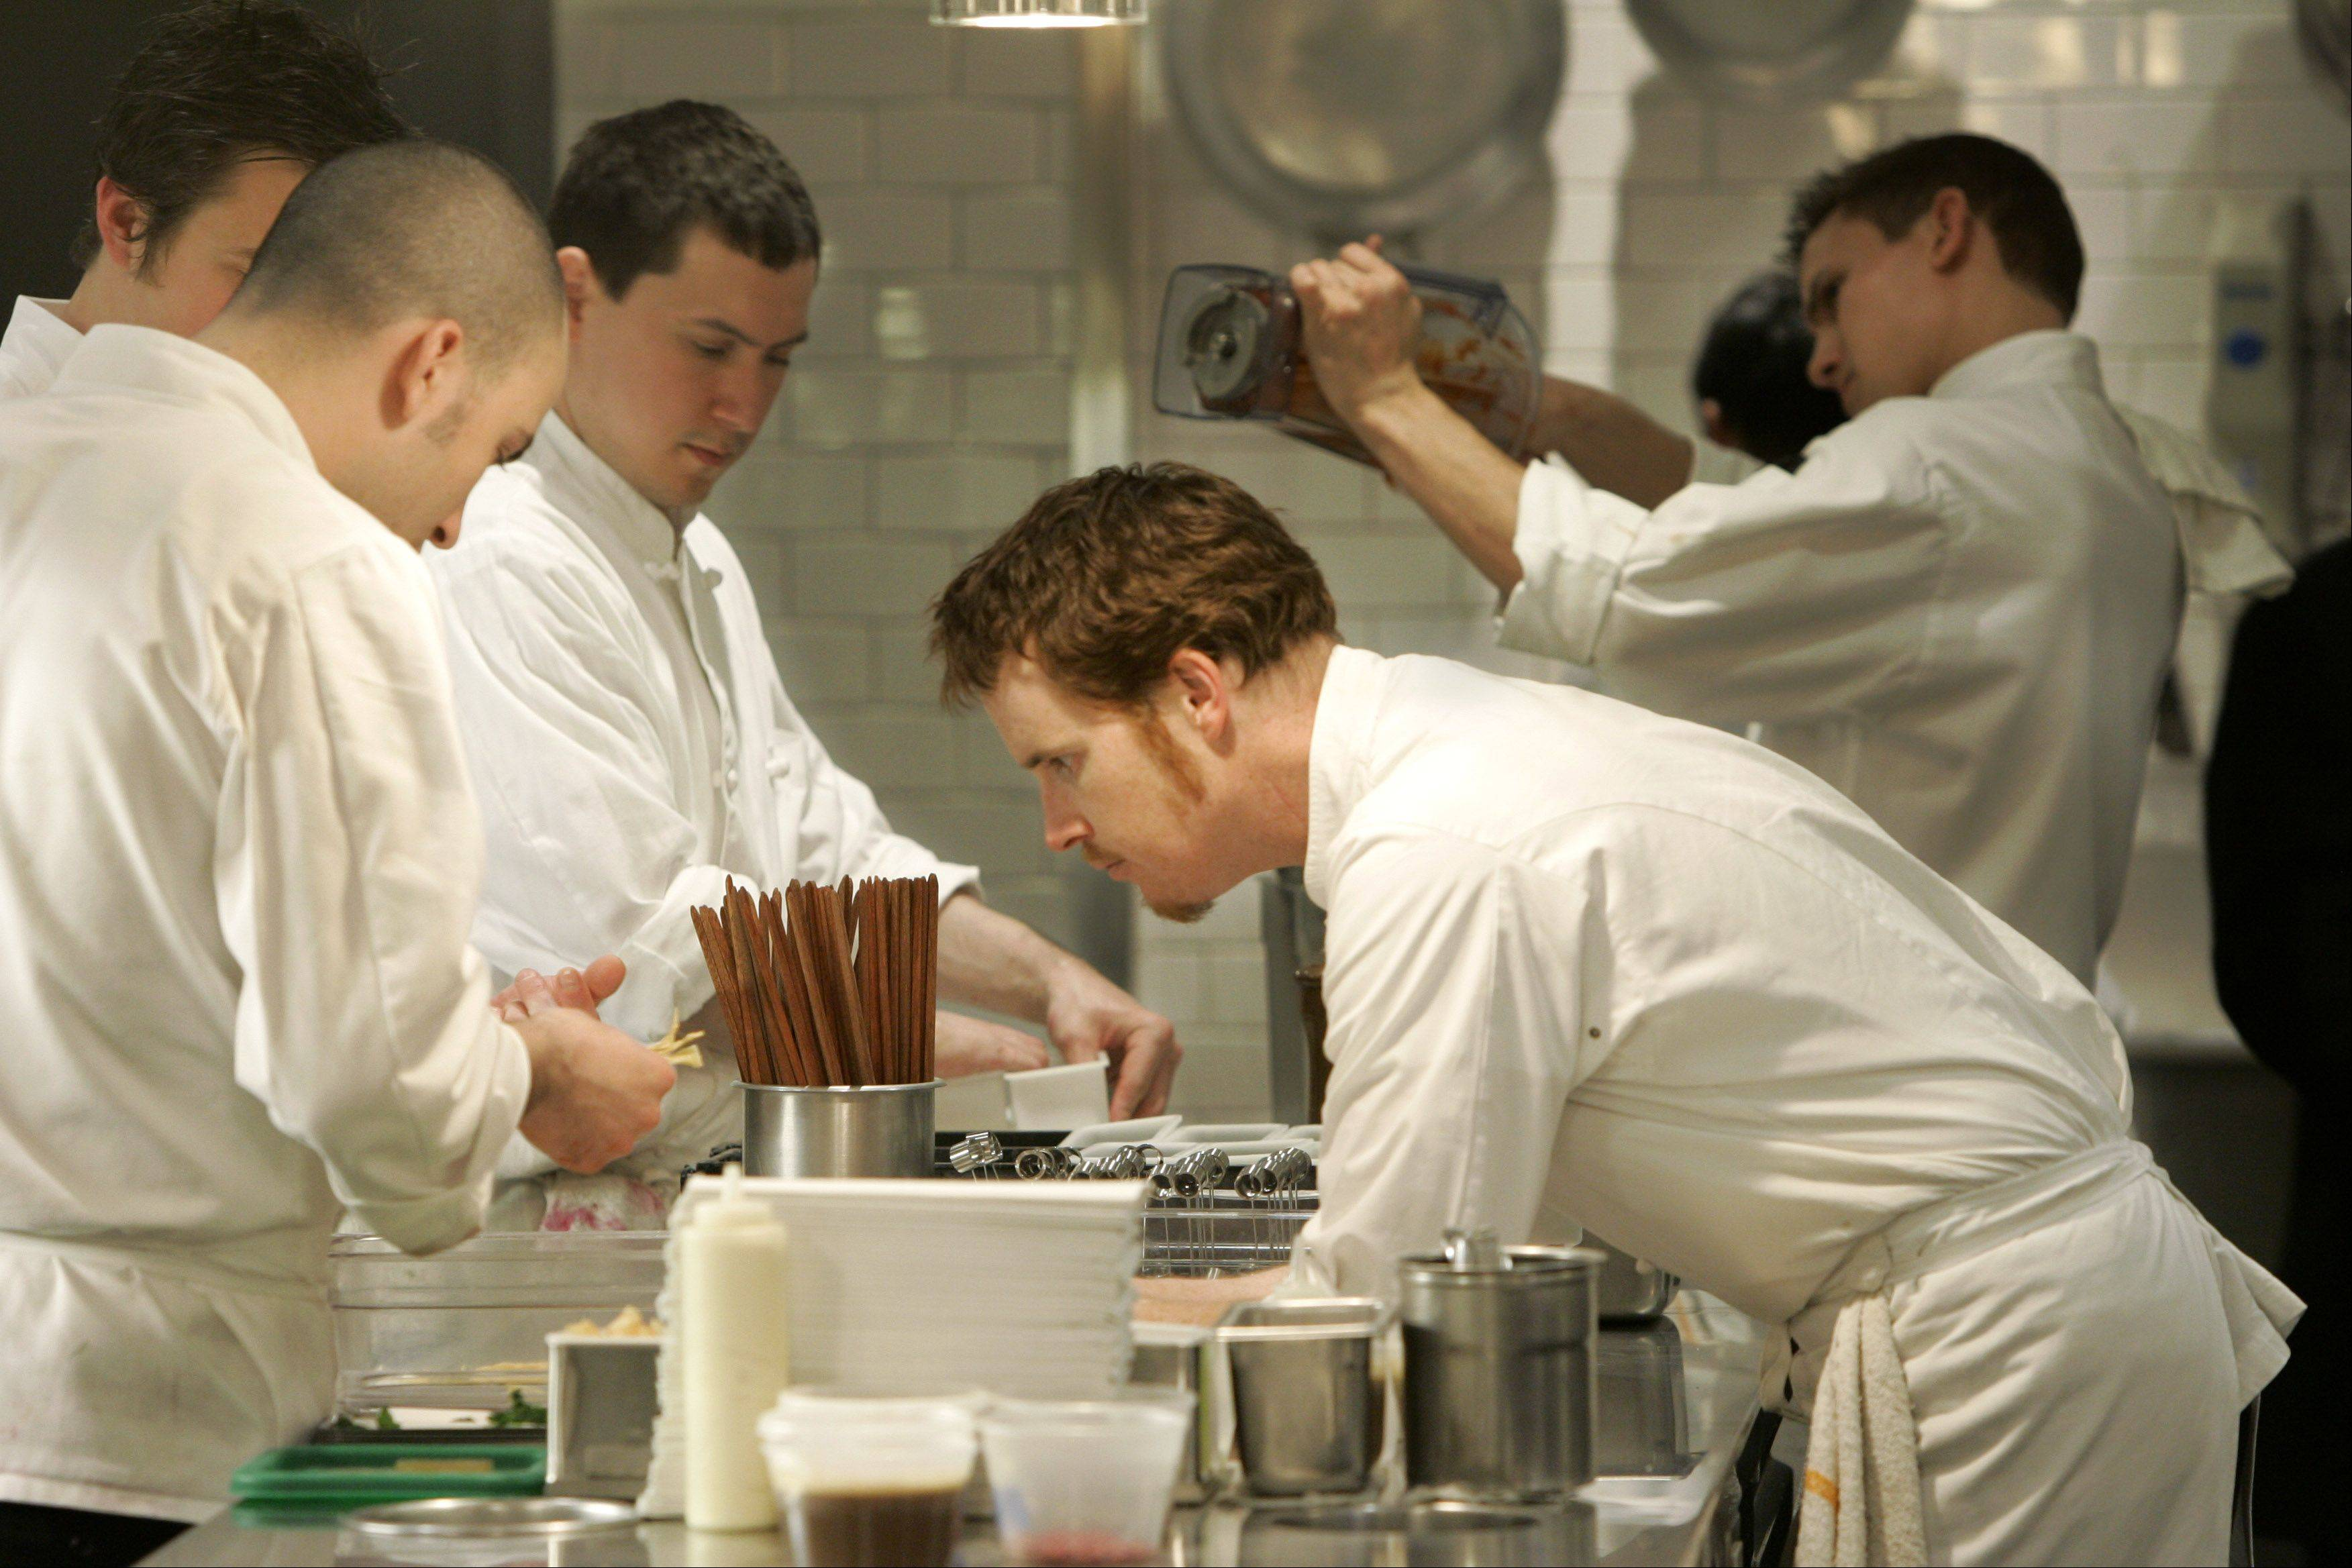 Chef Grant Achatz, right, will bring a crew from his Alinea Restaurant kitchen in Chicago to New York's Eleven Madison Park for a week in a unique restaurant swap.